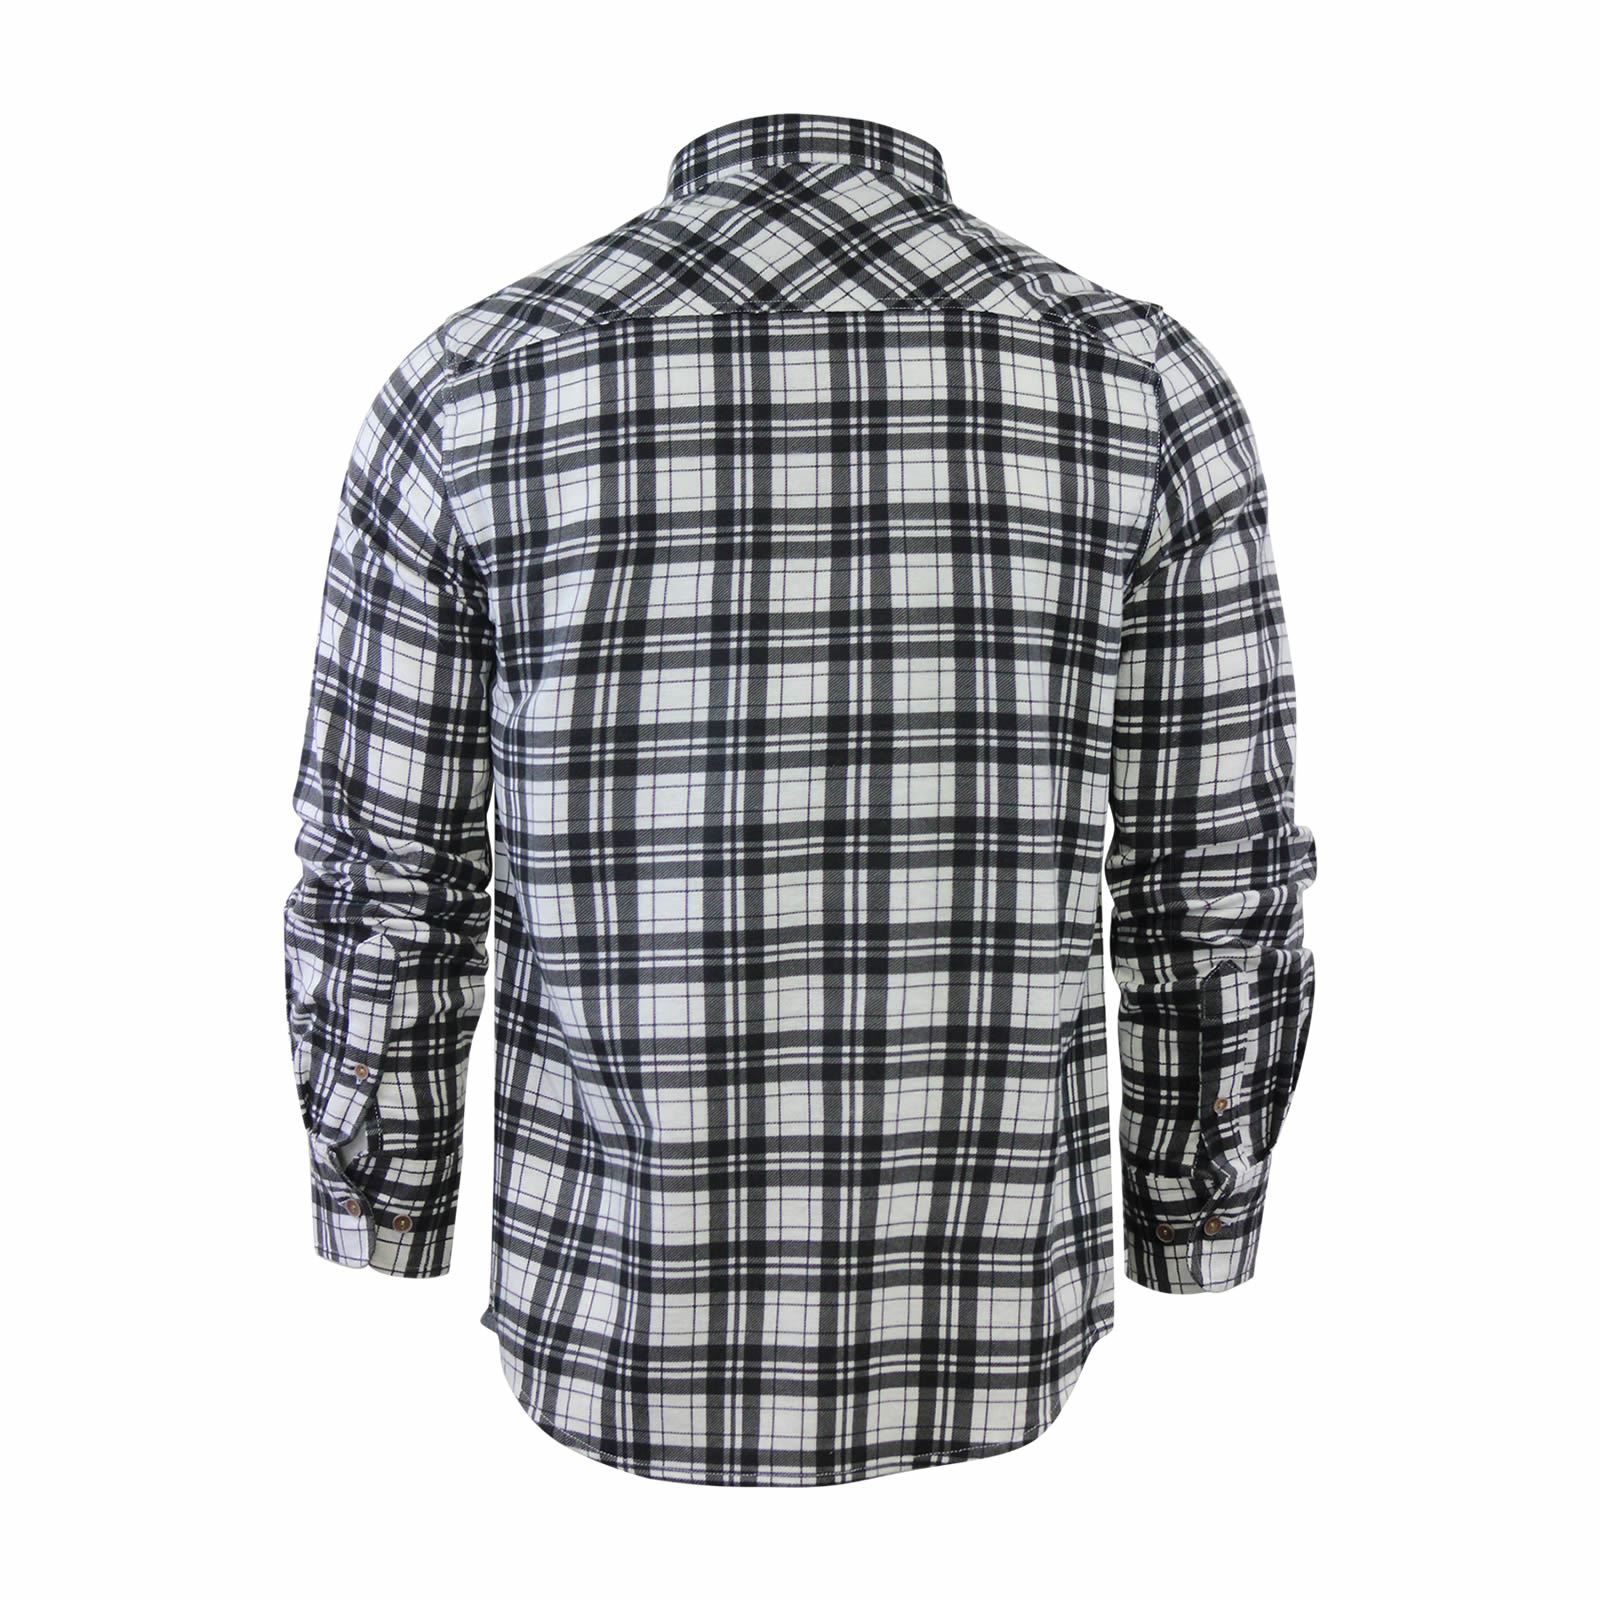 Mens-Check-Shirt-Brave-Soul-Flannel-Brushed-Cotton-Long-Sleeve-Casual-Top thumbnail 85